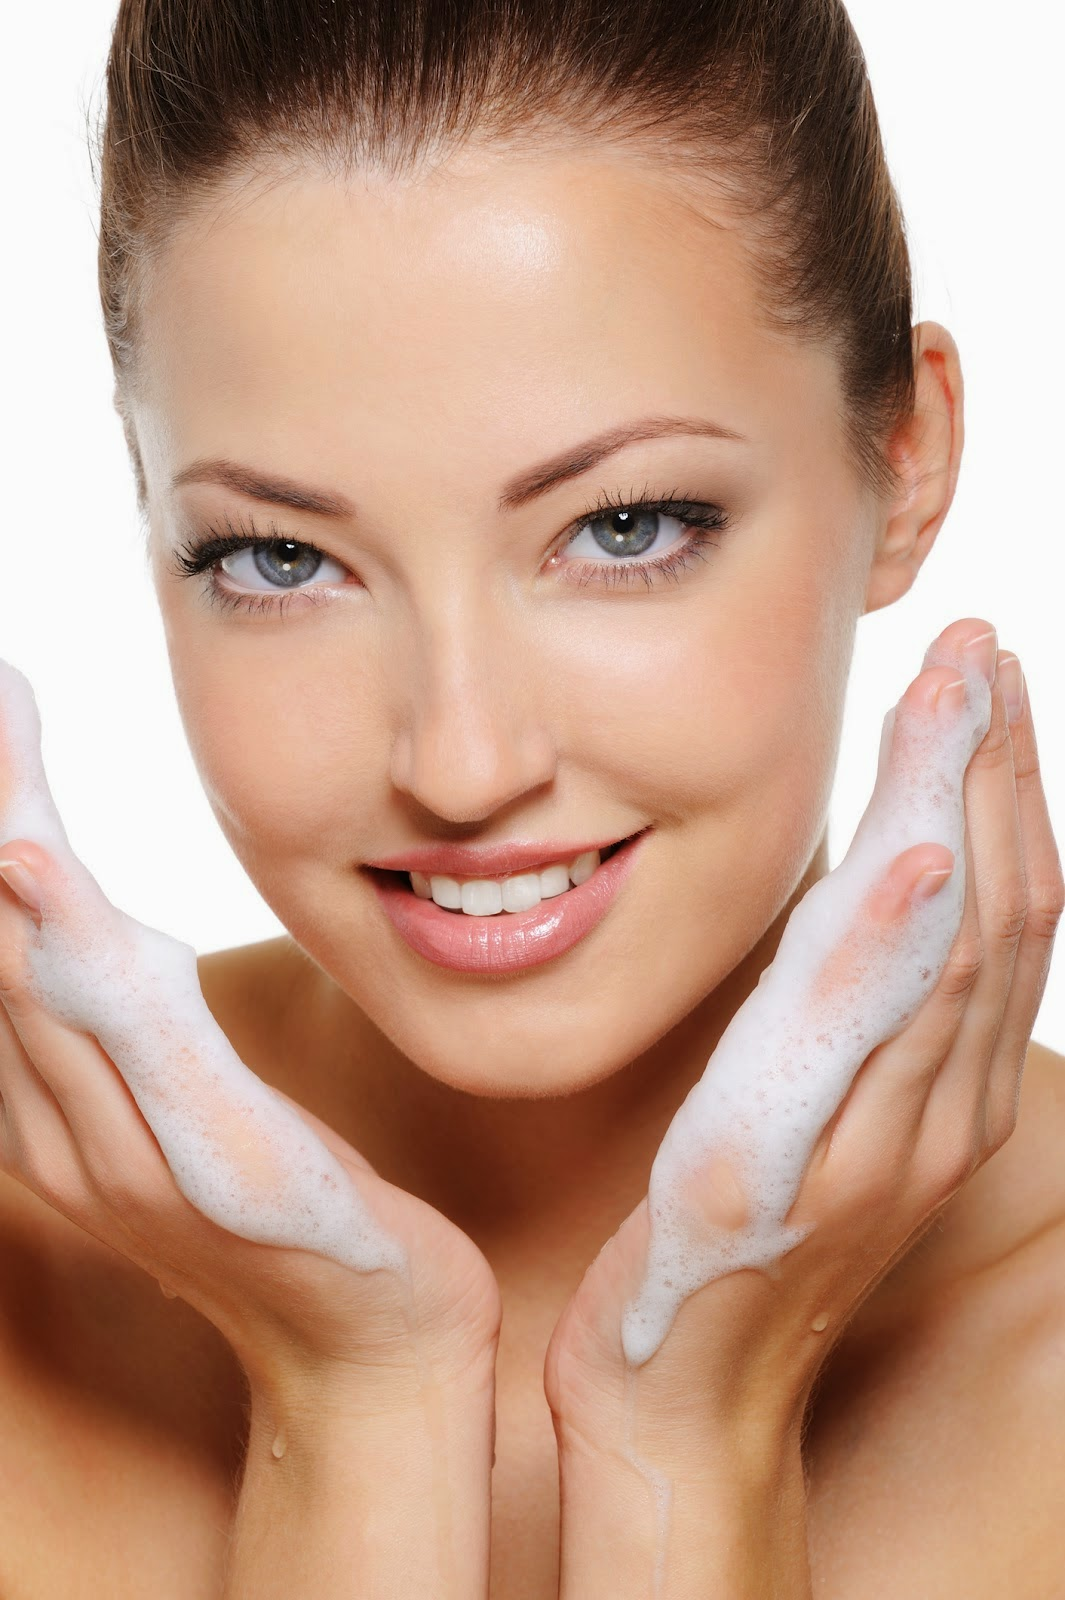 Health Tips for Women - Clear Skin Tips